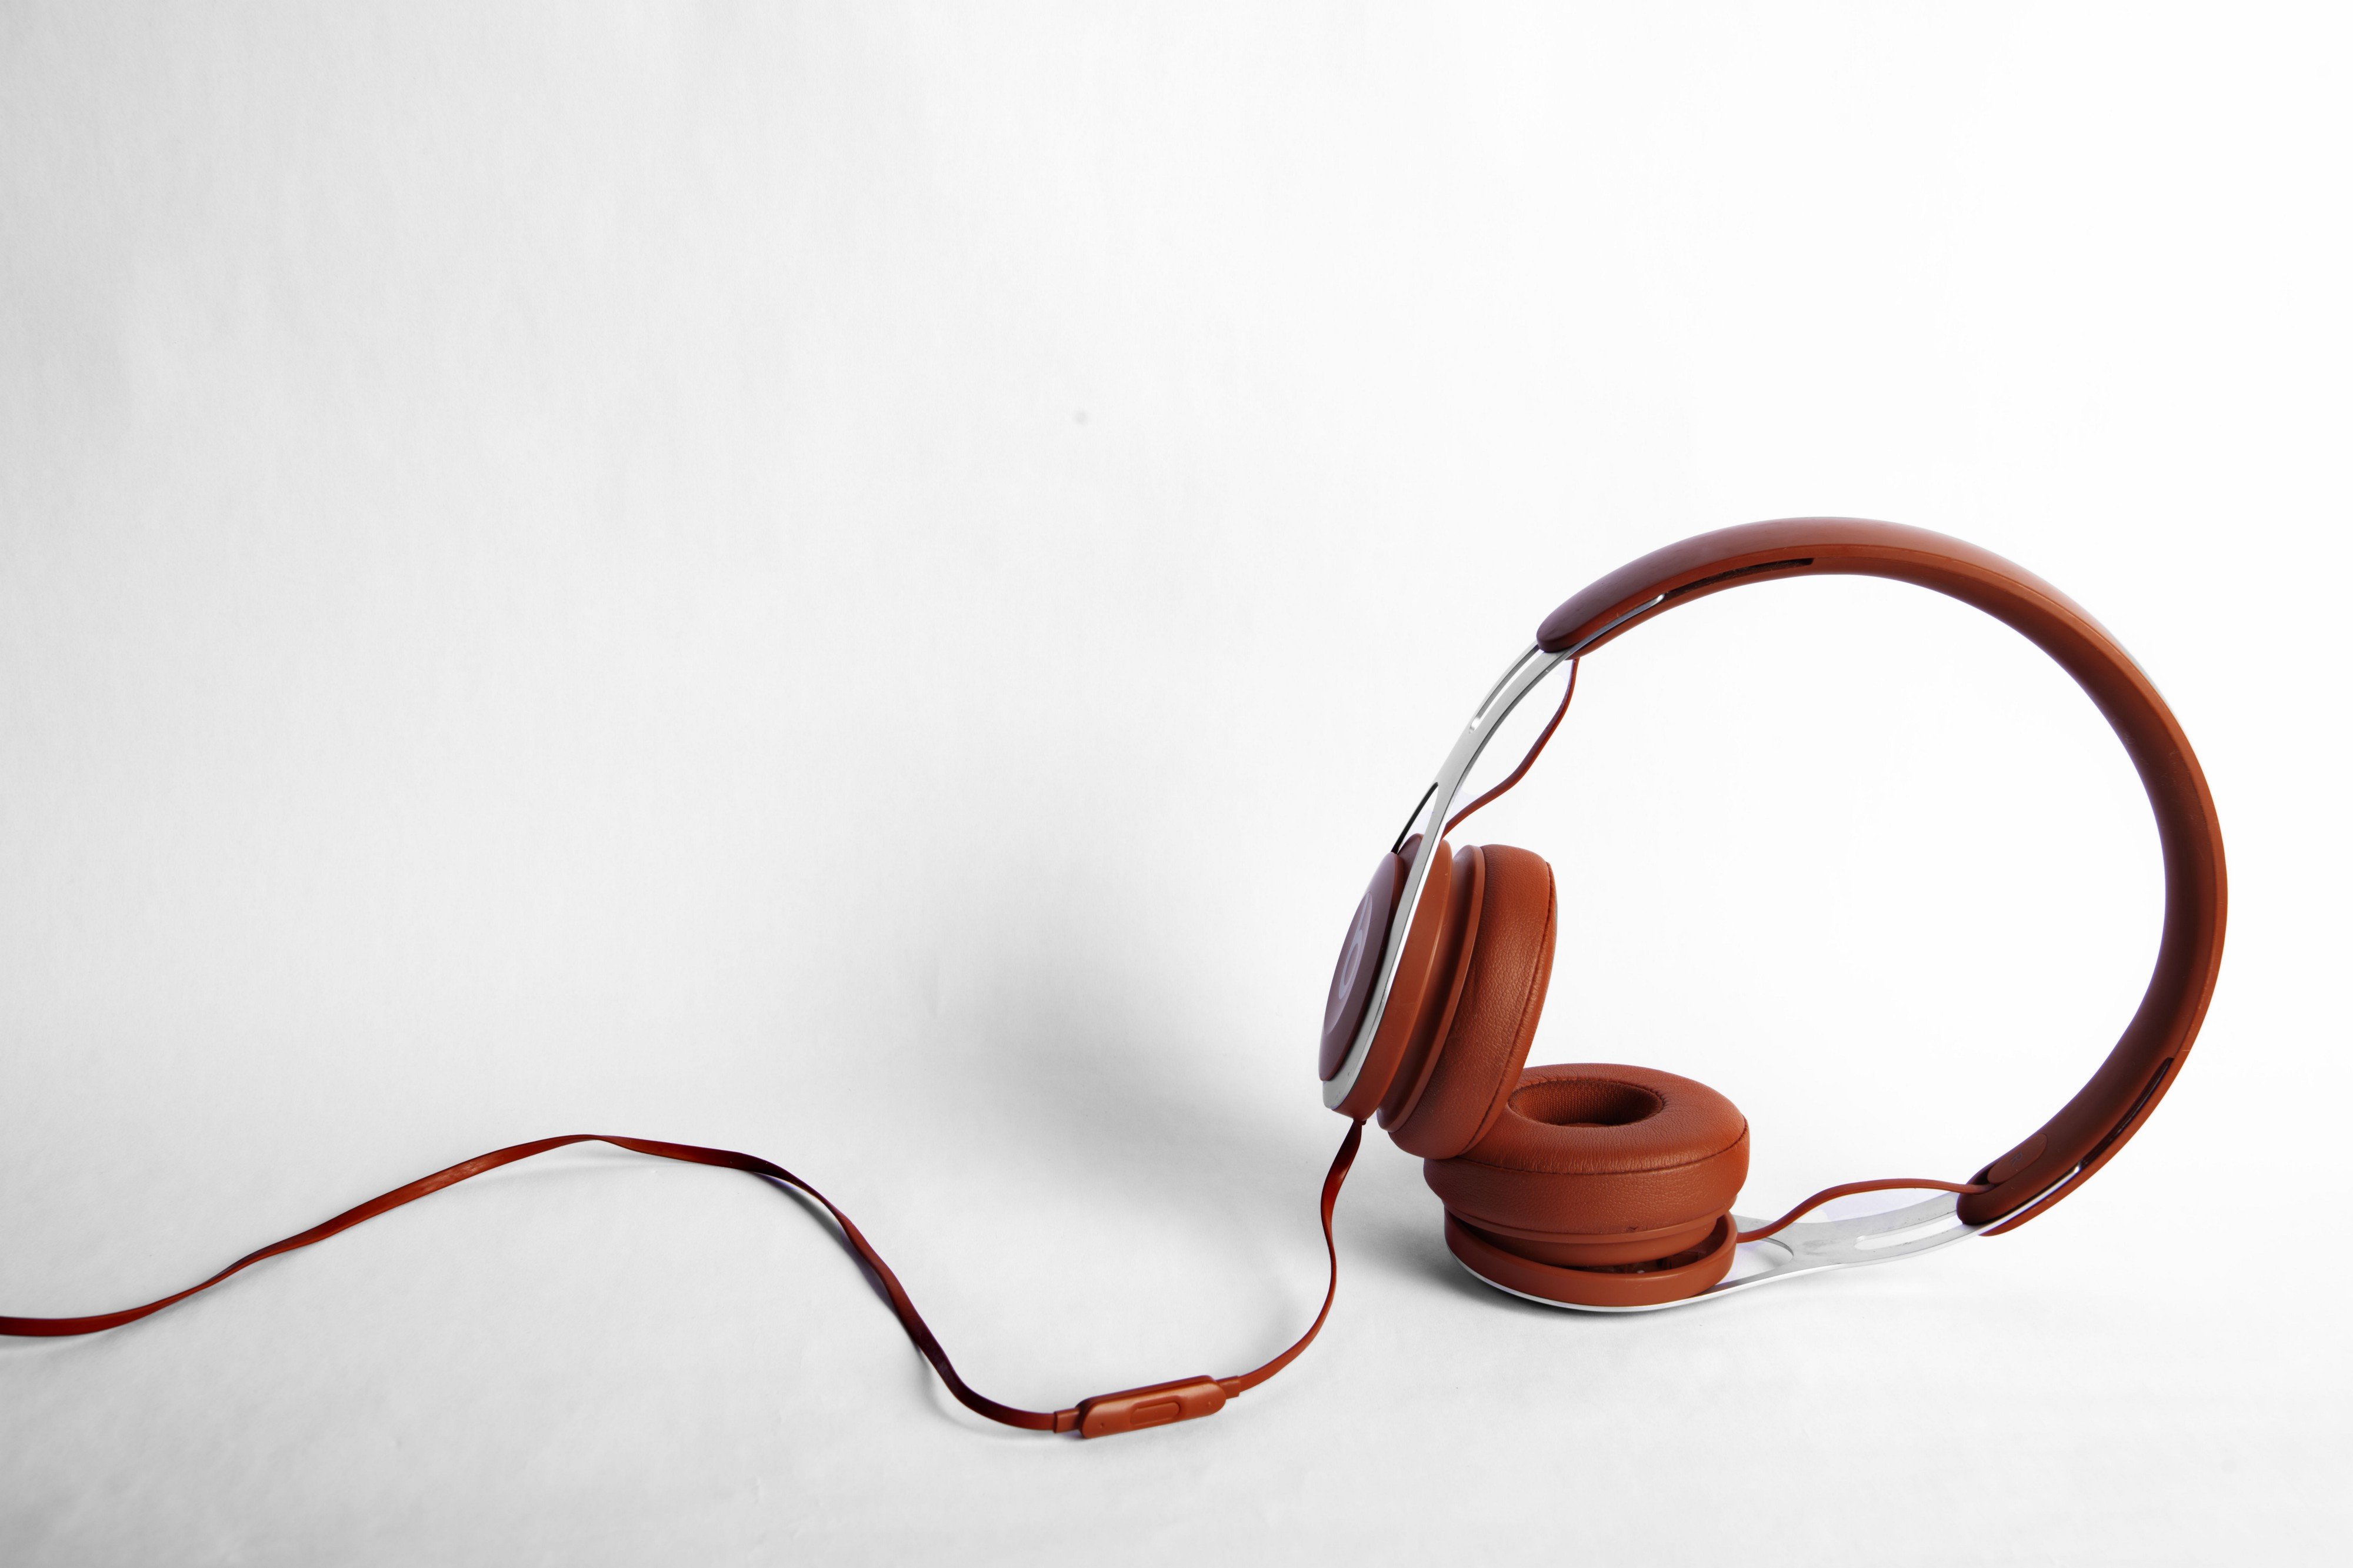 Rust-colored headphones to the right, with the wires trailing to the side